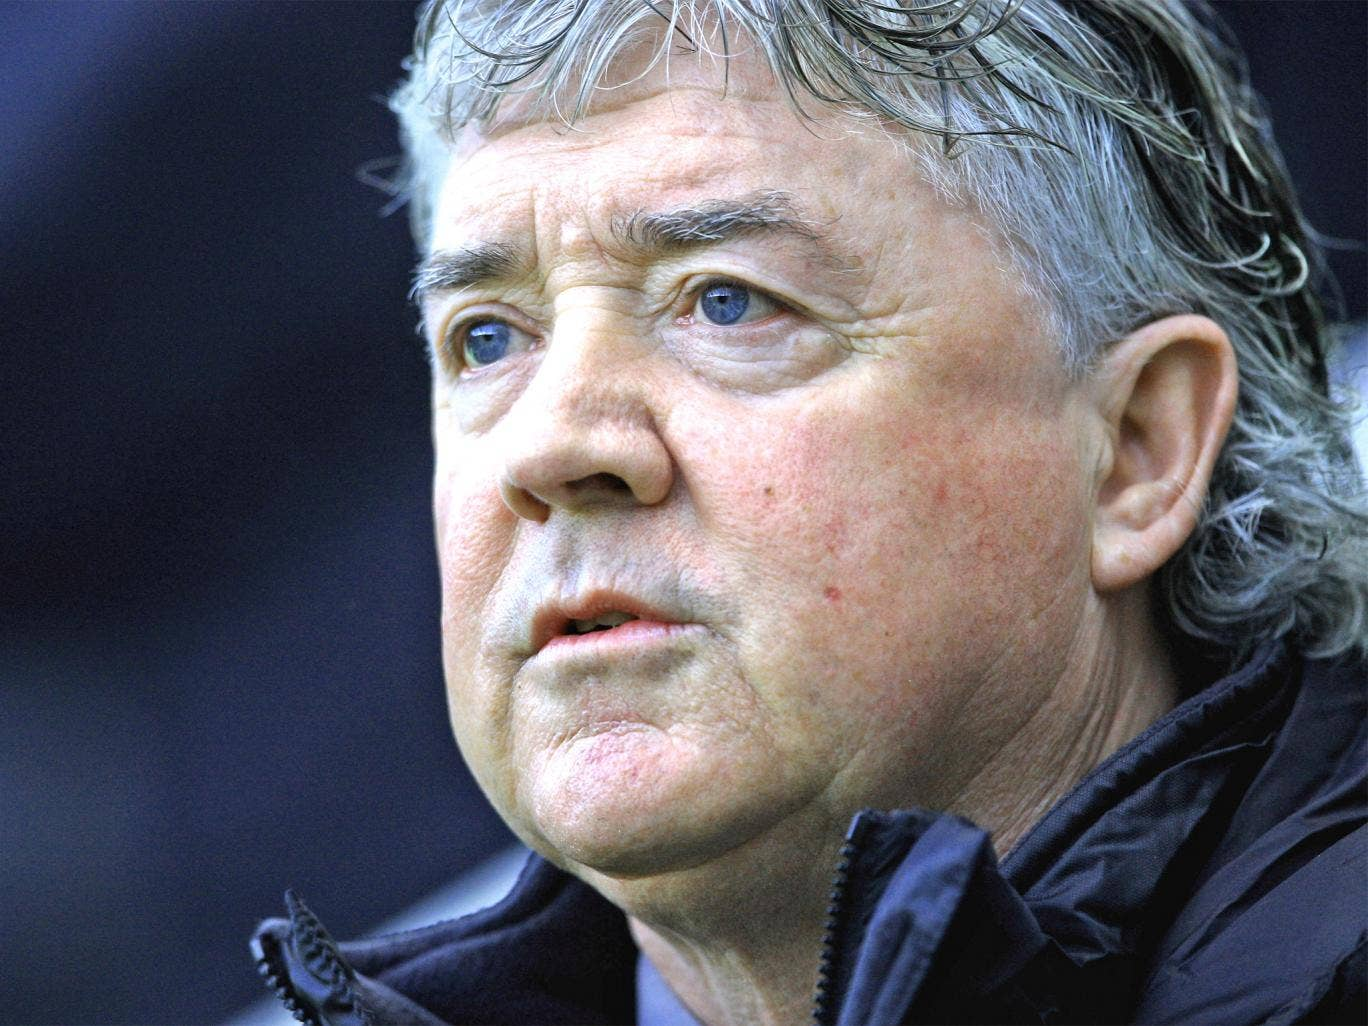 Kinnear's appointment as Newcastle's director of football sent shock waves through the club